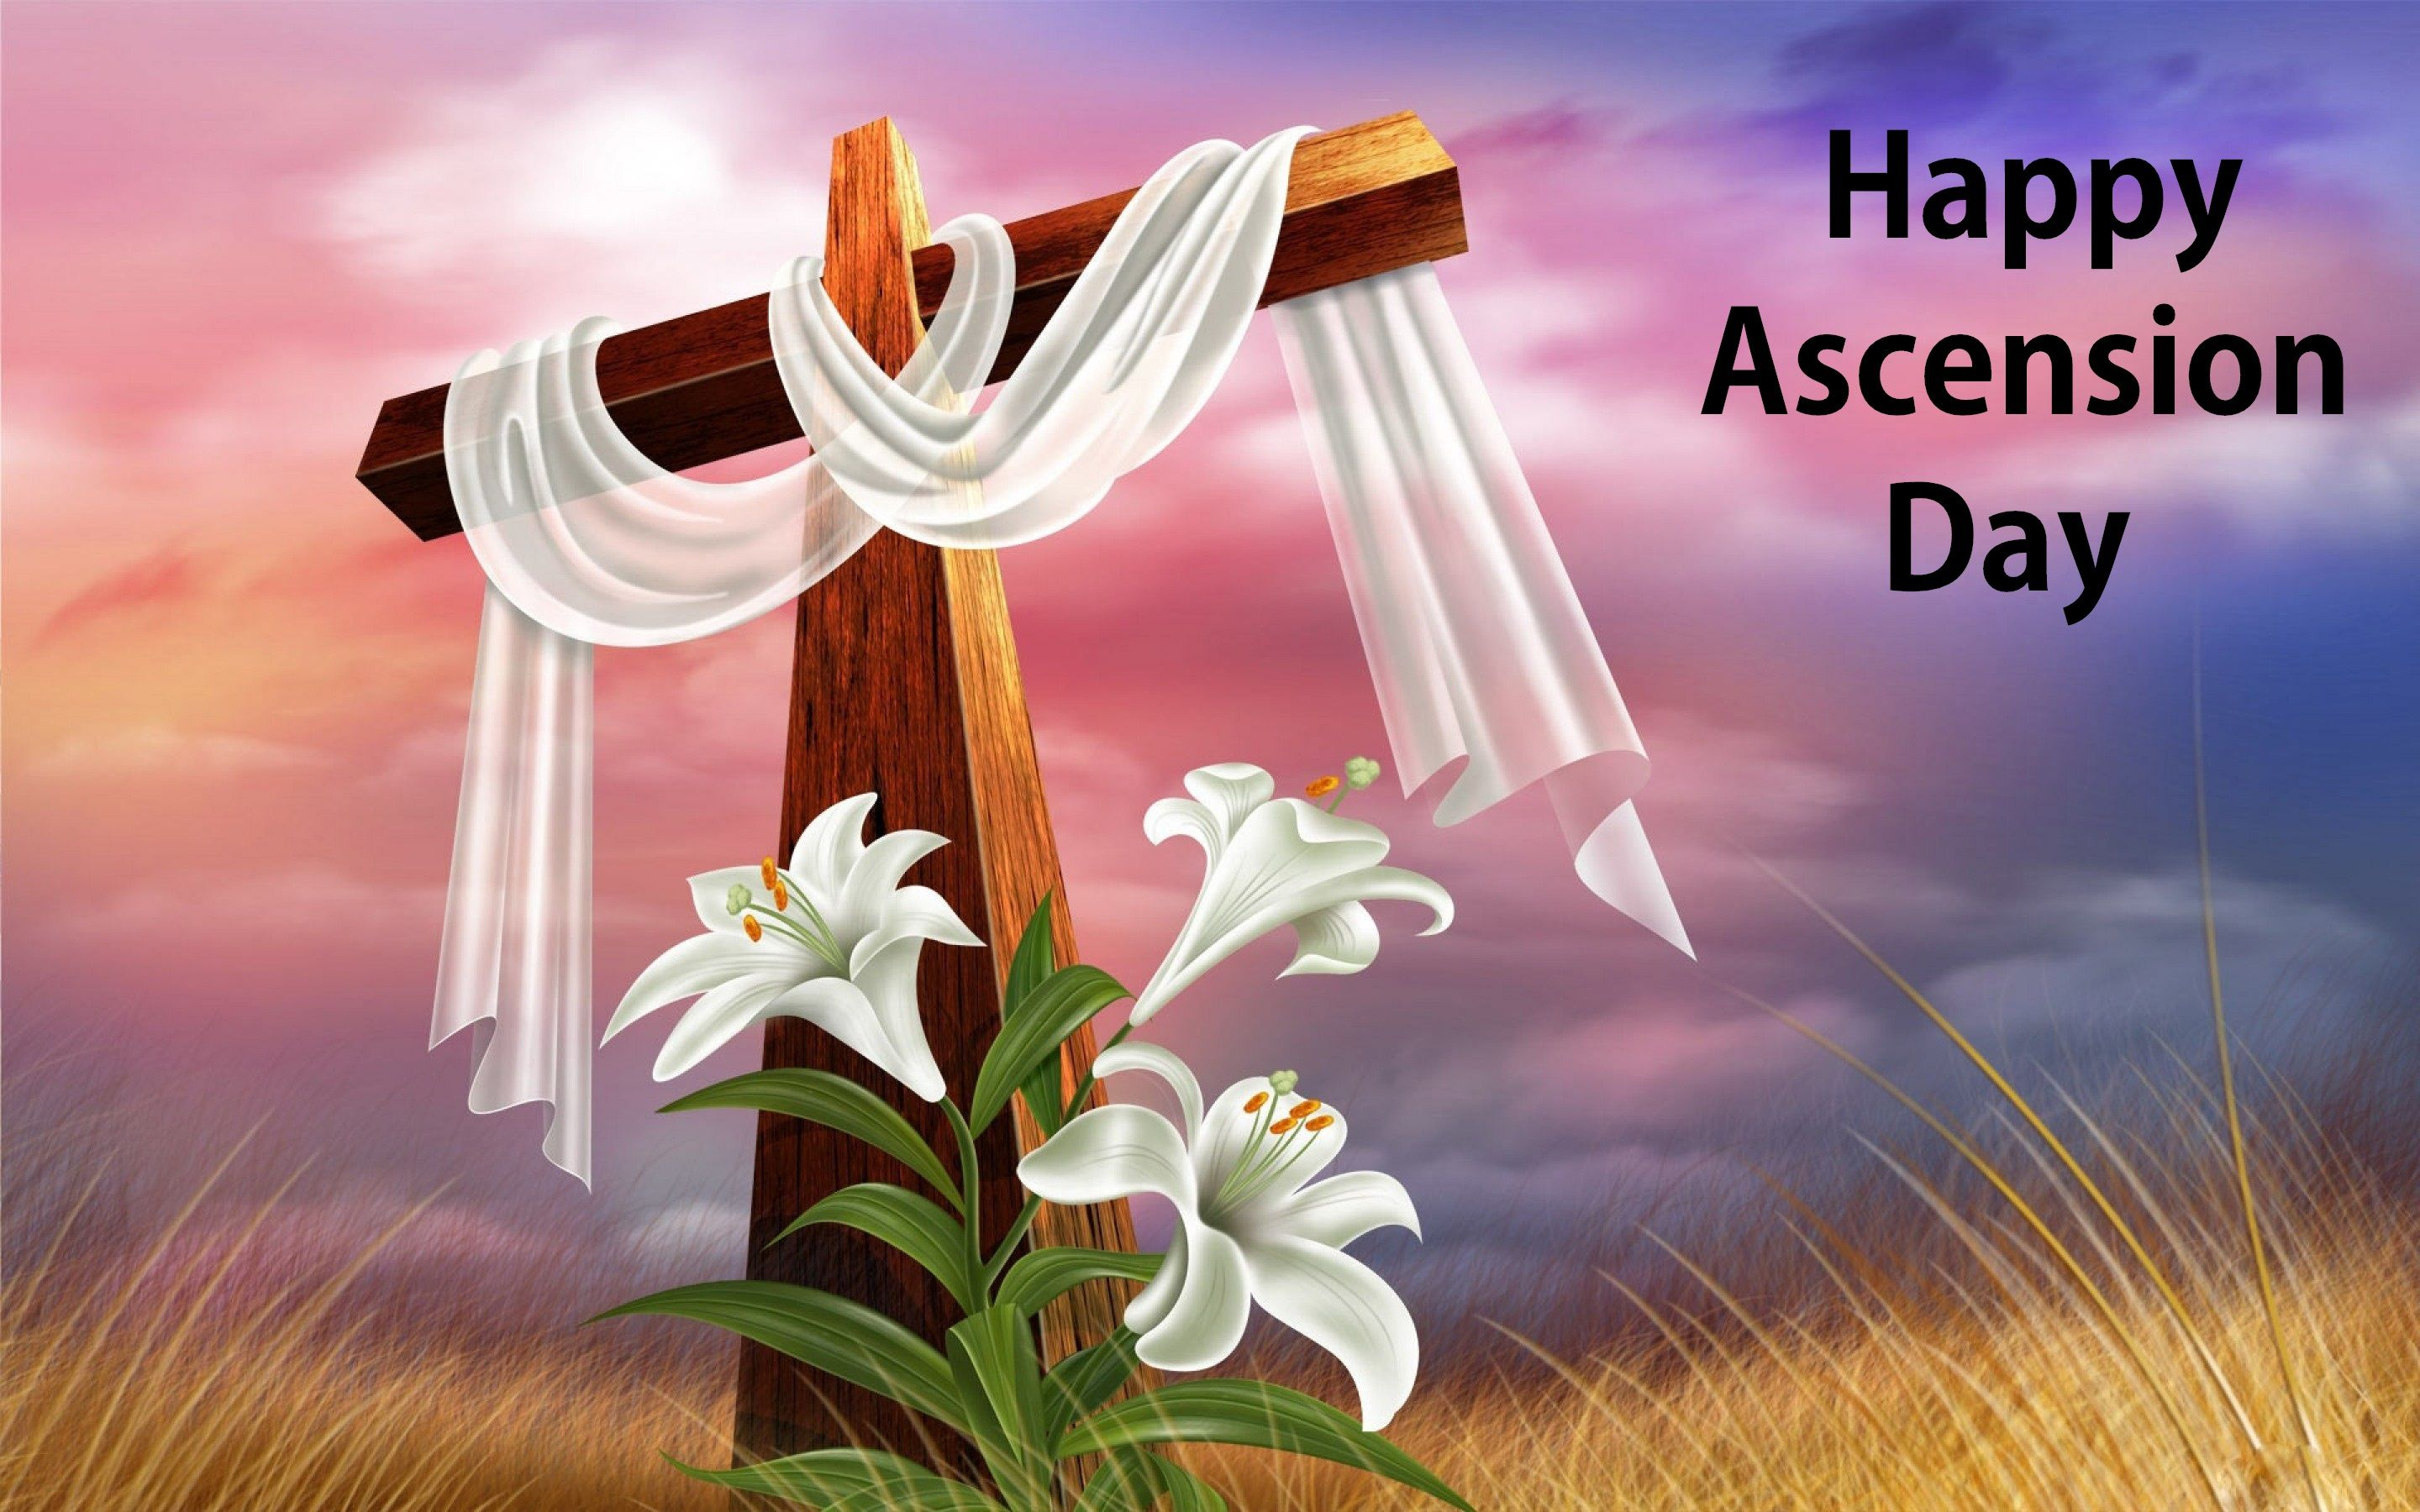 Happy Ascension Day 2018 Quotes